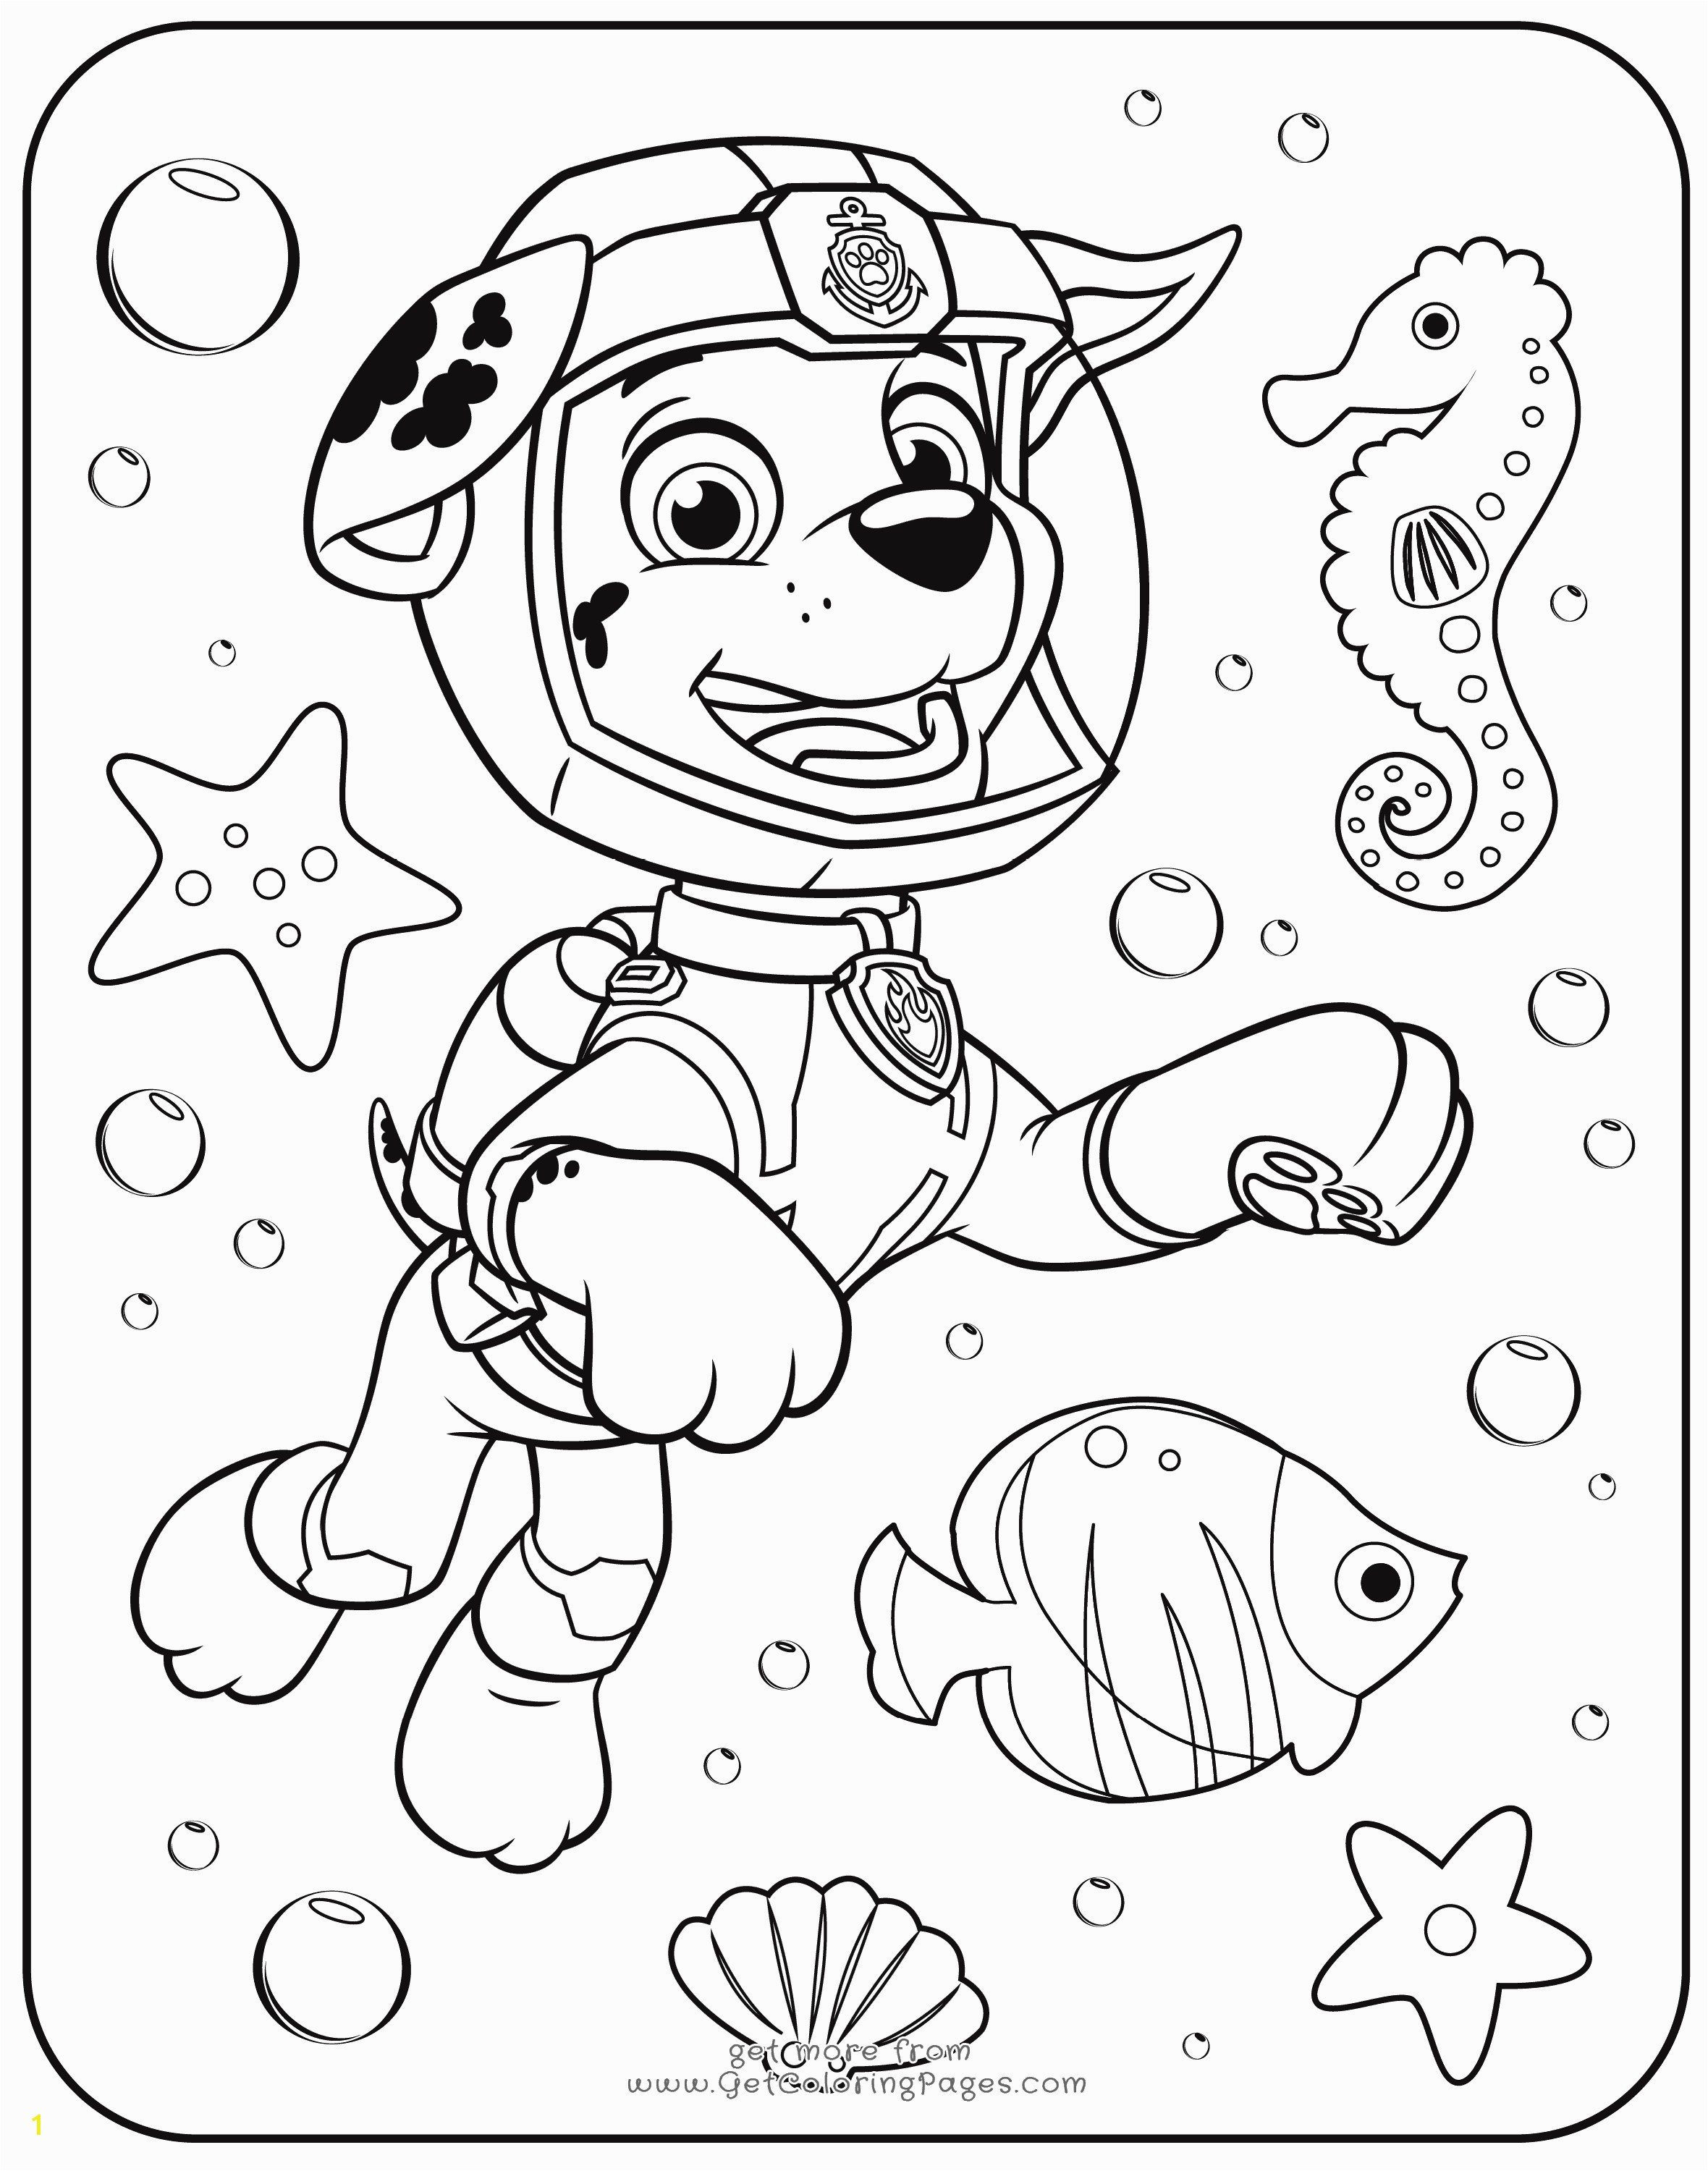 Printable Paw Patrol Coloring Pages Zuma Coloring Pages New Paw Patrol Rocky Skye And Zuma Coloring Page